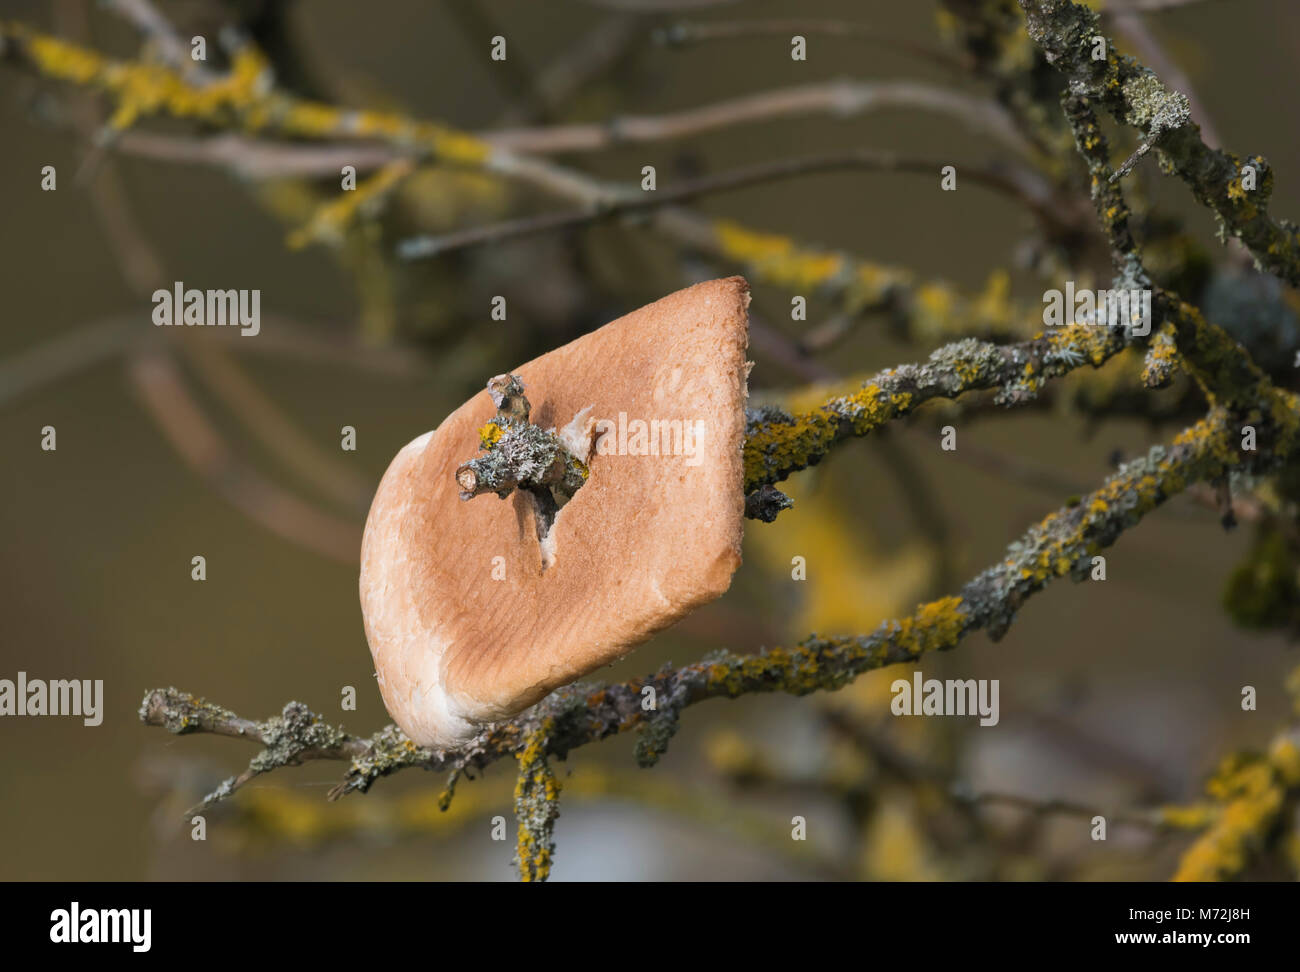 slice-of-white-bread-impaled-on-a-twig-of-a-tree-attracting-birds-M72J8H.jpg